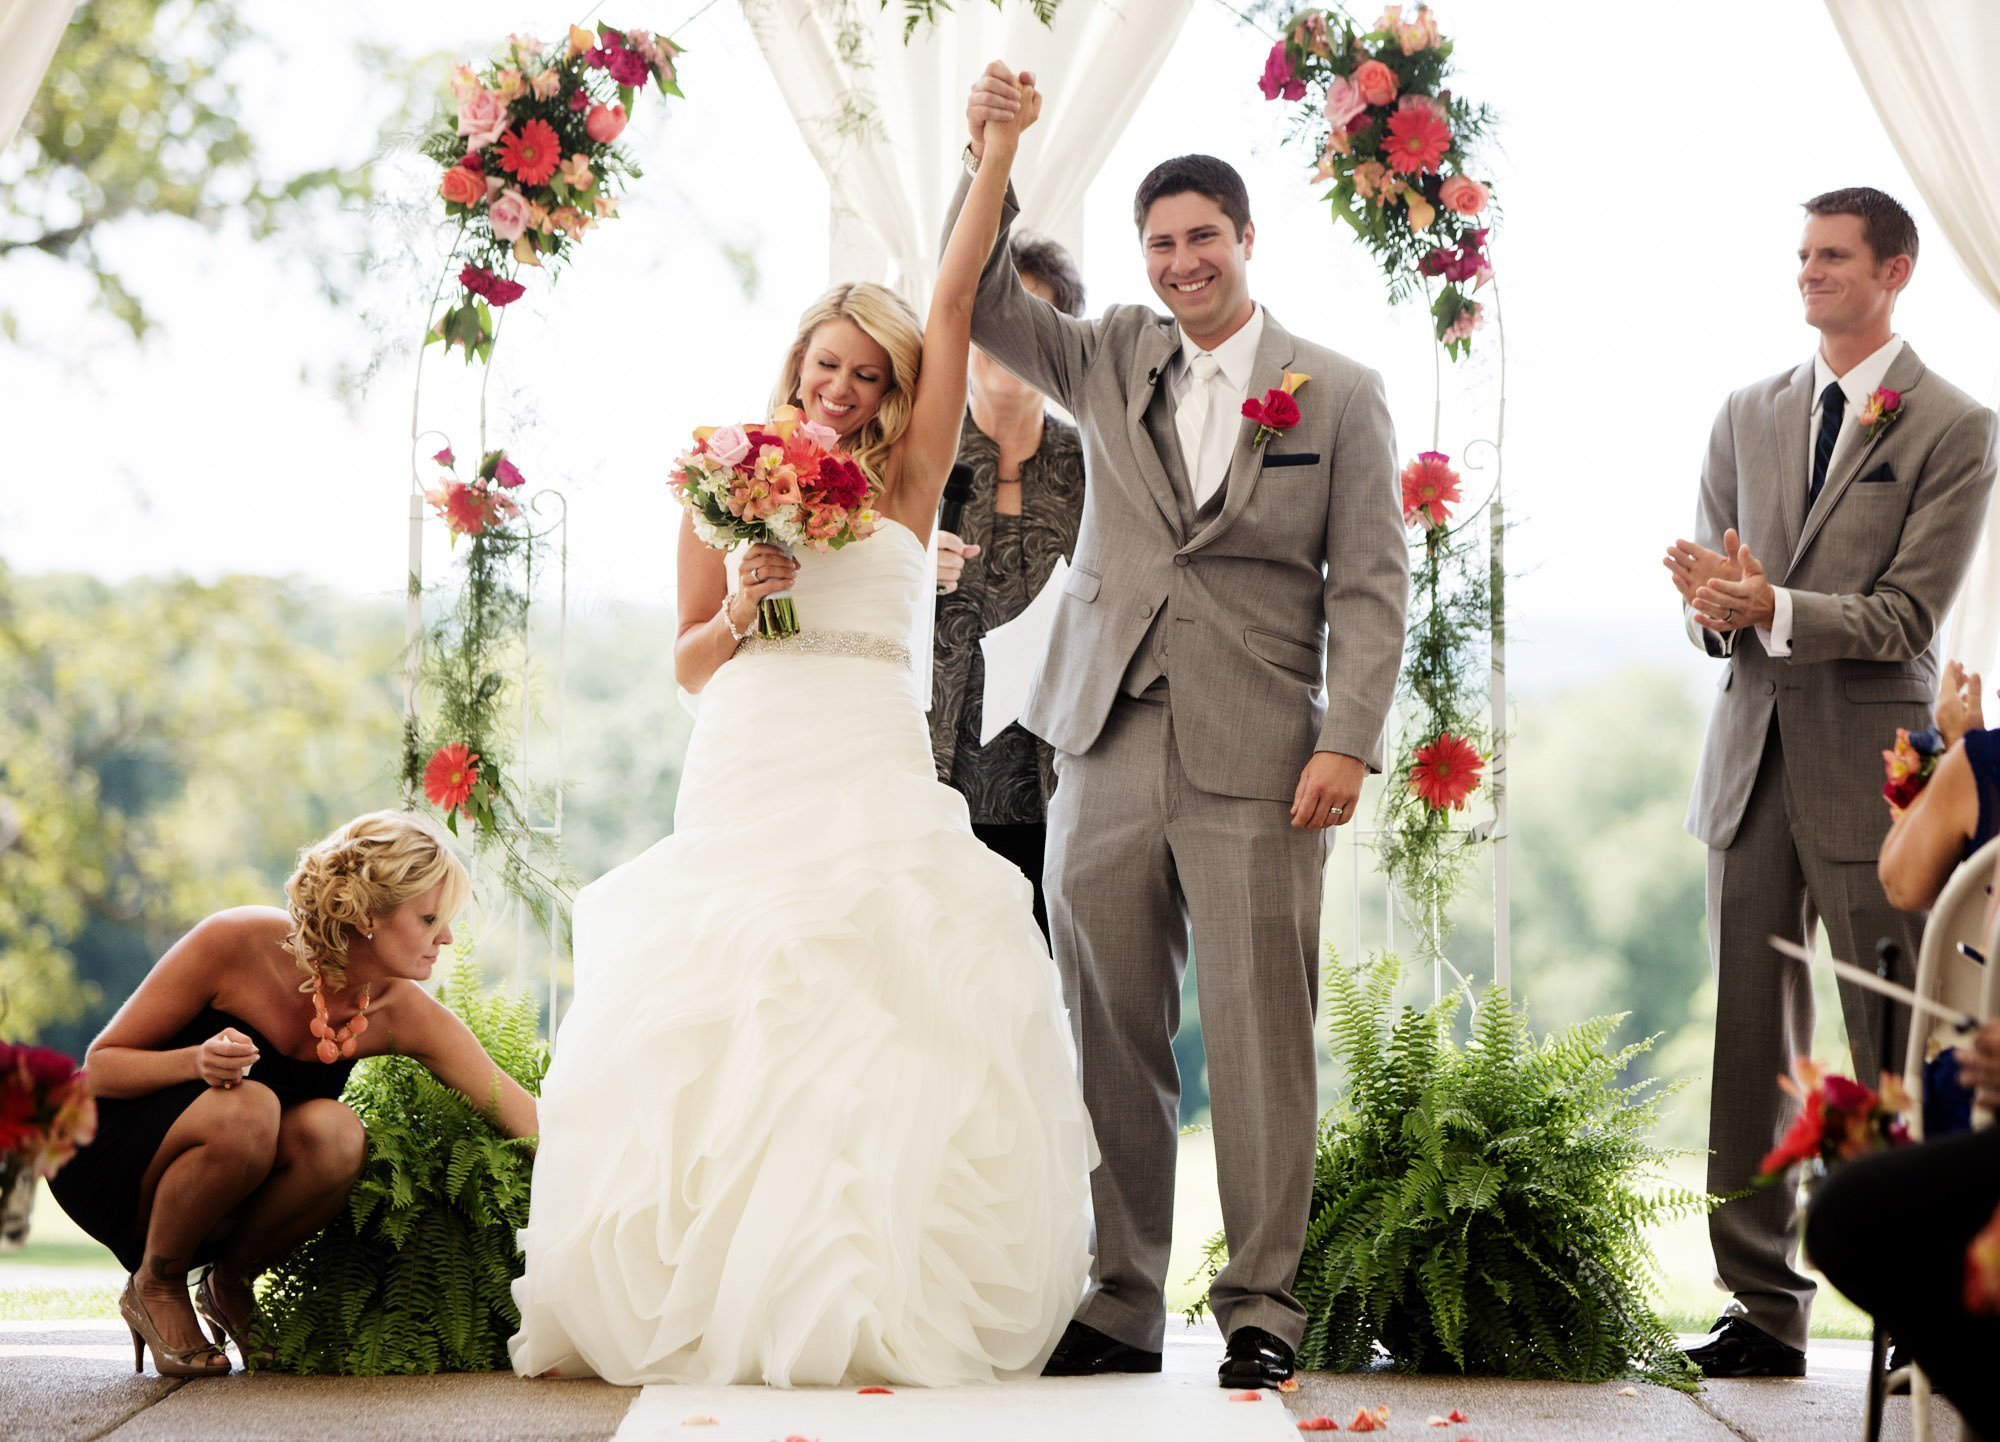 The couple cheers following their Penn State Arboretum wedding.